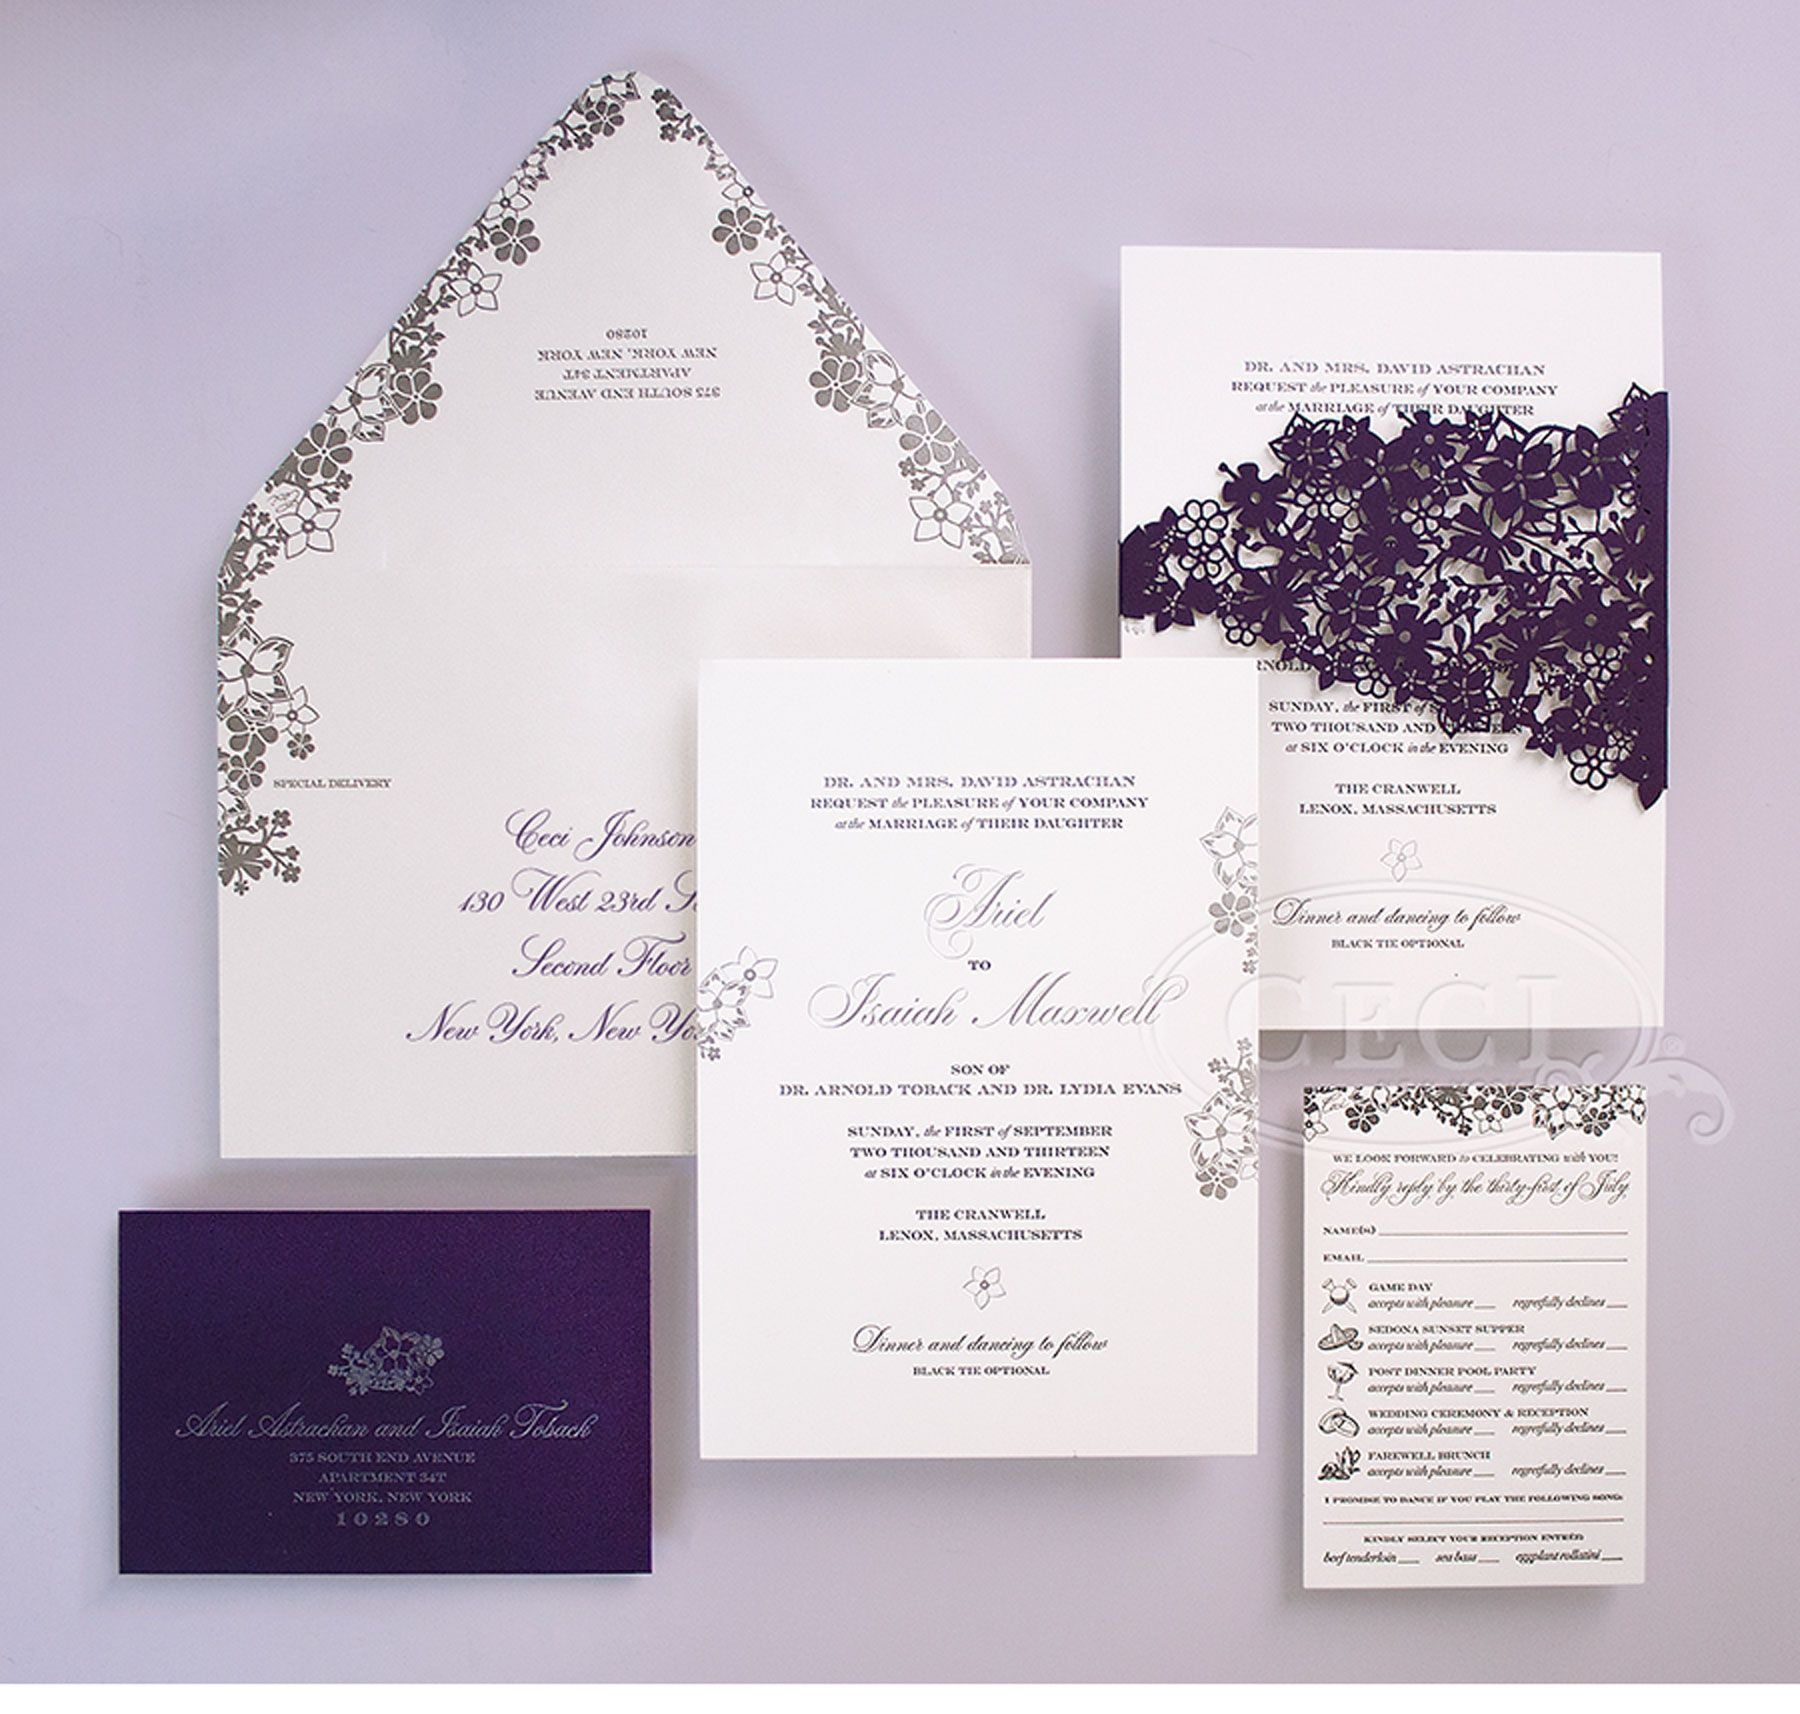 Luxury Wedding Invitations by Ceci New York - Our Muse - Perfectly ...